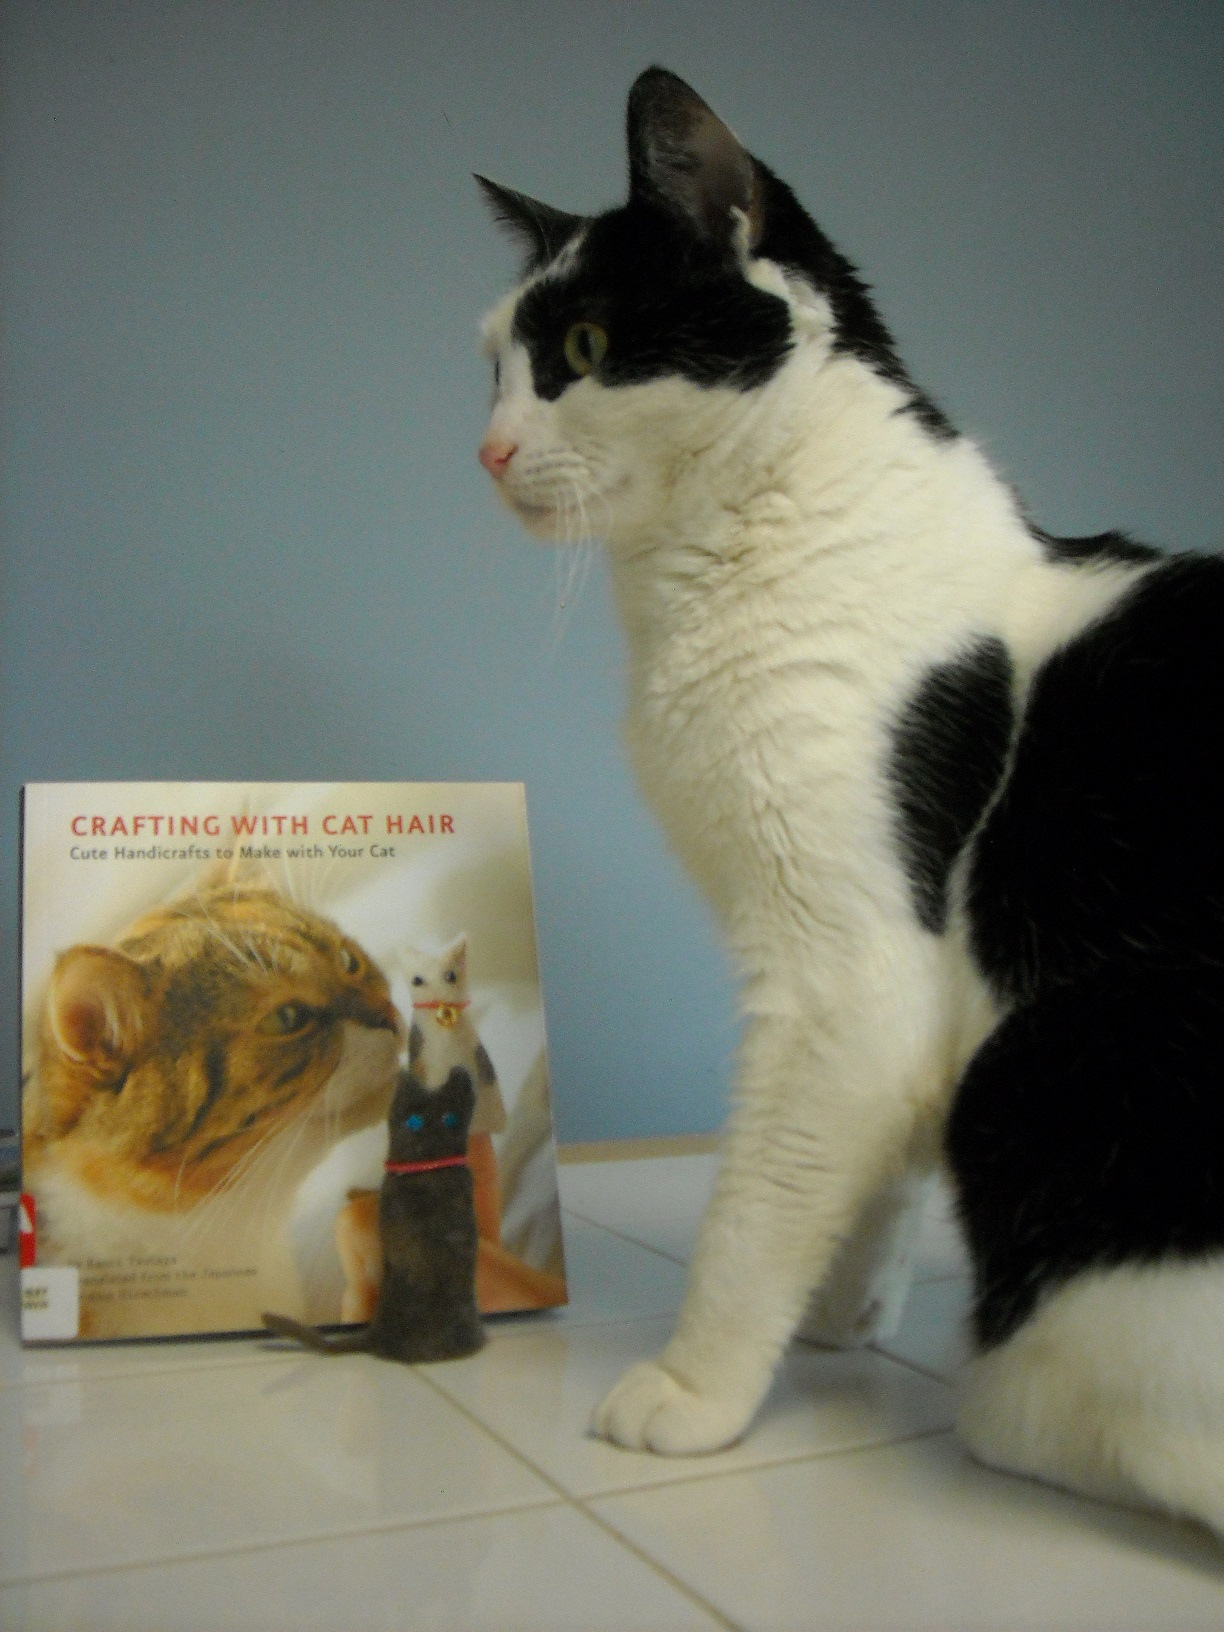 Biggie, a black and white shorthair cat, a copy of the book, and a cat fur finger puppet